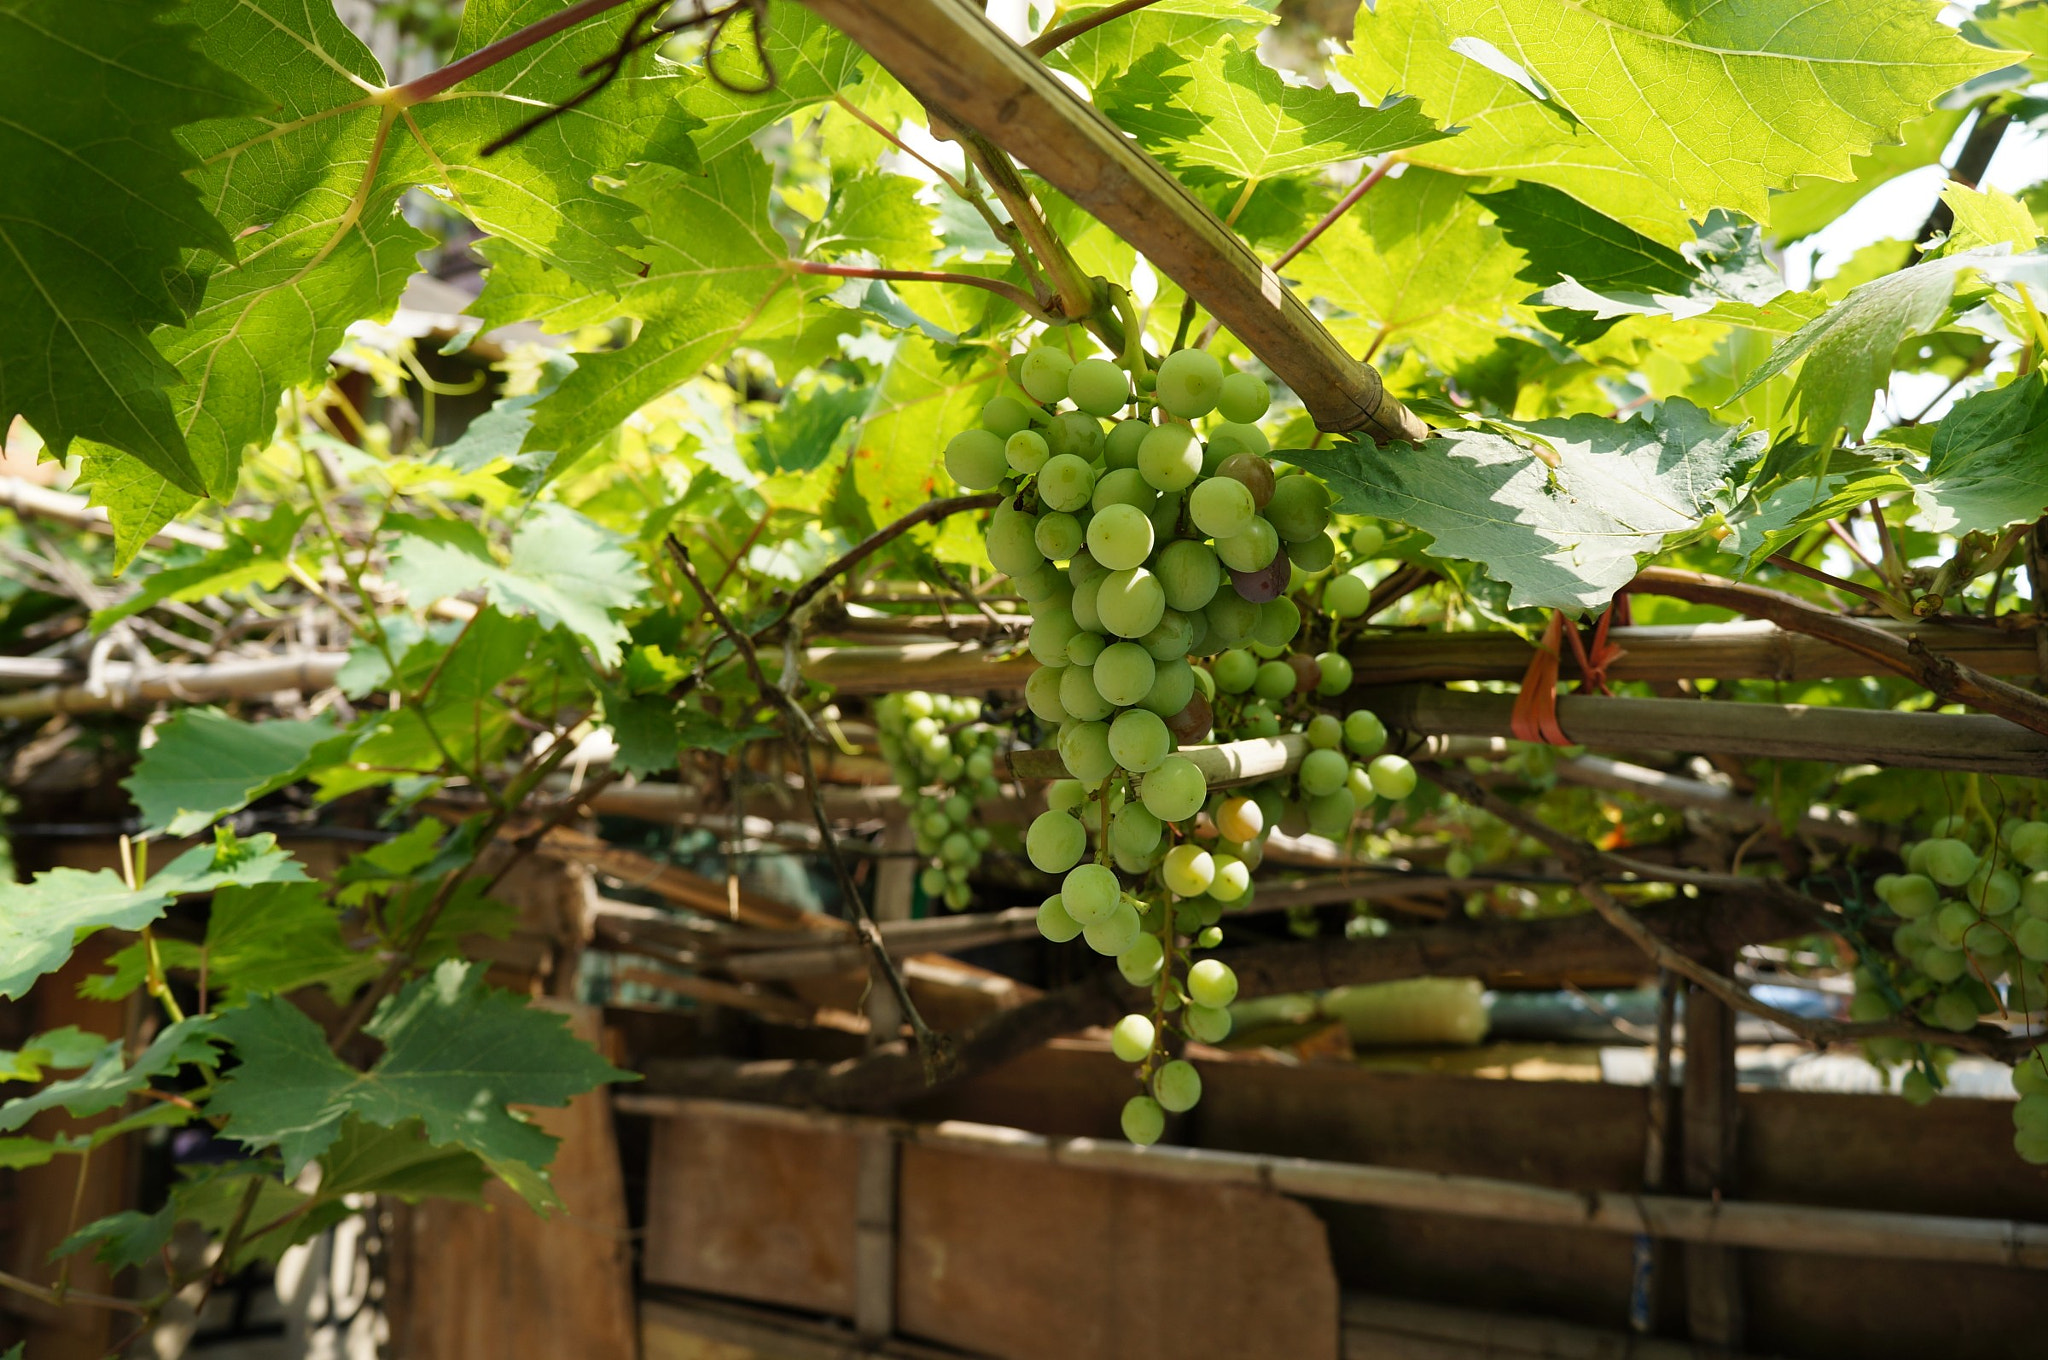 Photograph Unripe Grapes by Mu Cheng on 500px